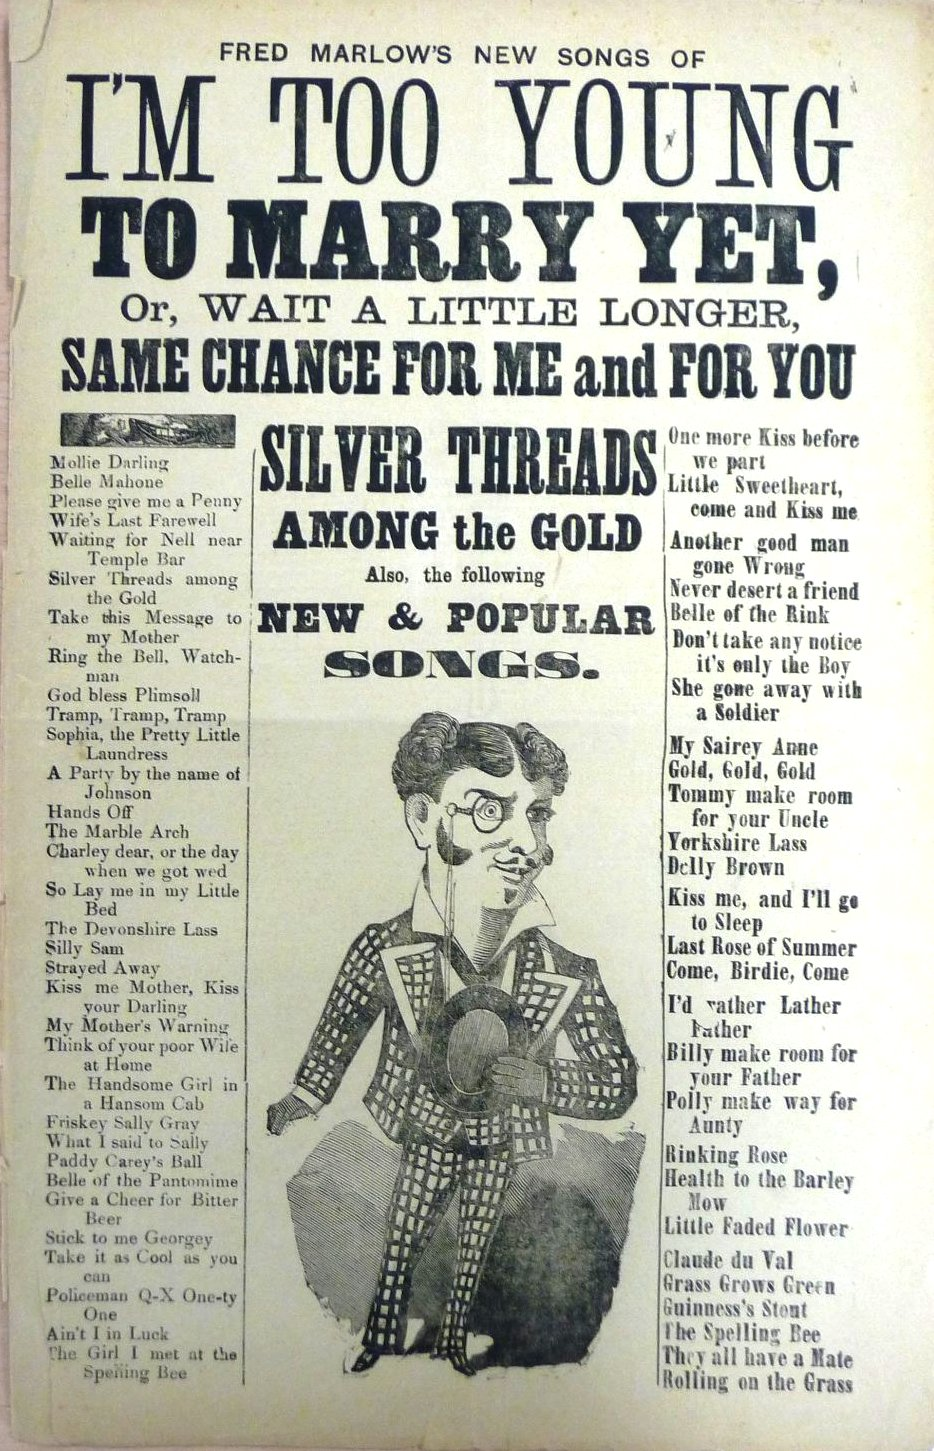 Printed by William S Fortey, successor to Jemmy Catnach.